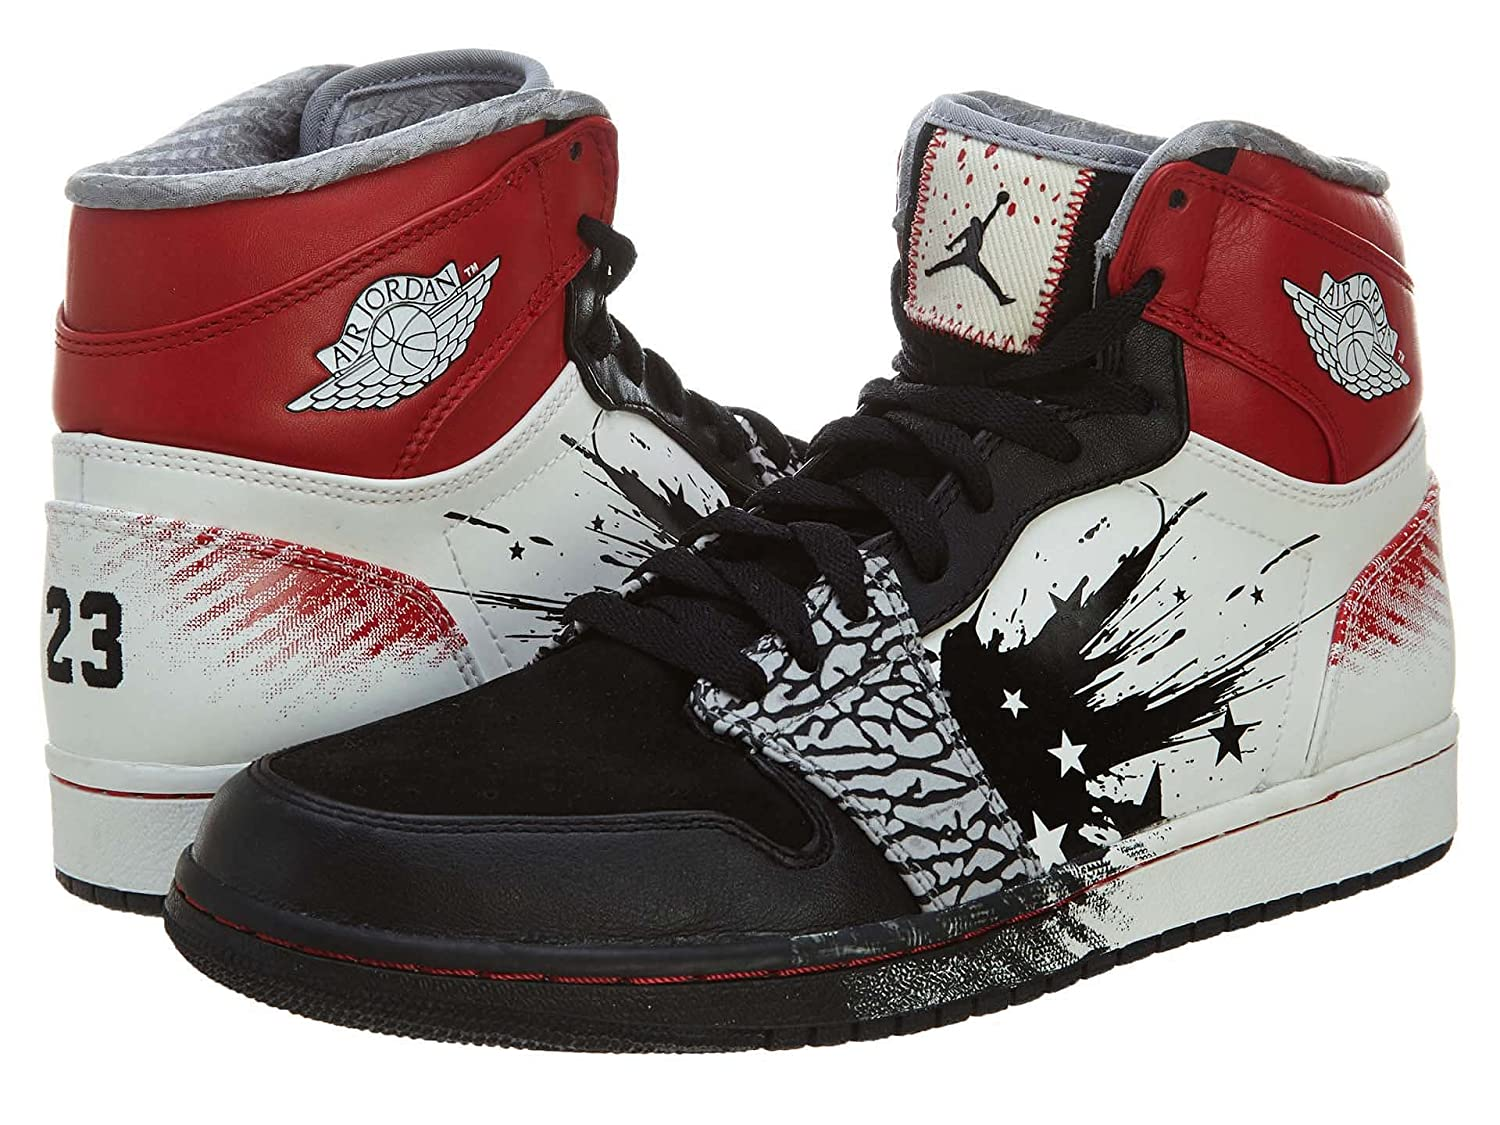 timeless design aaa37 02ad3 Amazon.com   Nike Mens Air Jordan 1 High DW Dave White Black Sport Red-White  Leather Basketball Shoes Size 10   Basketball